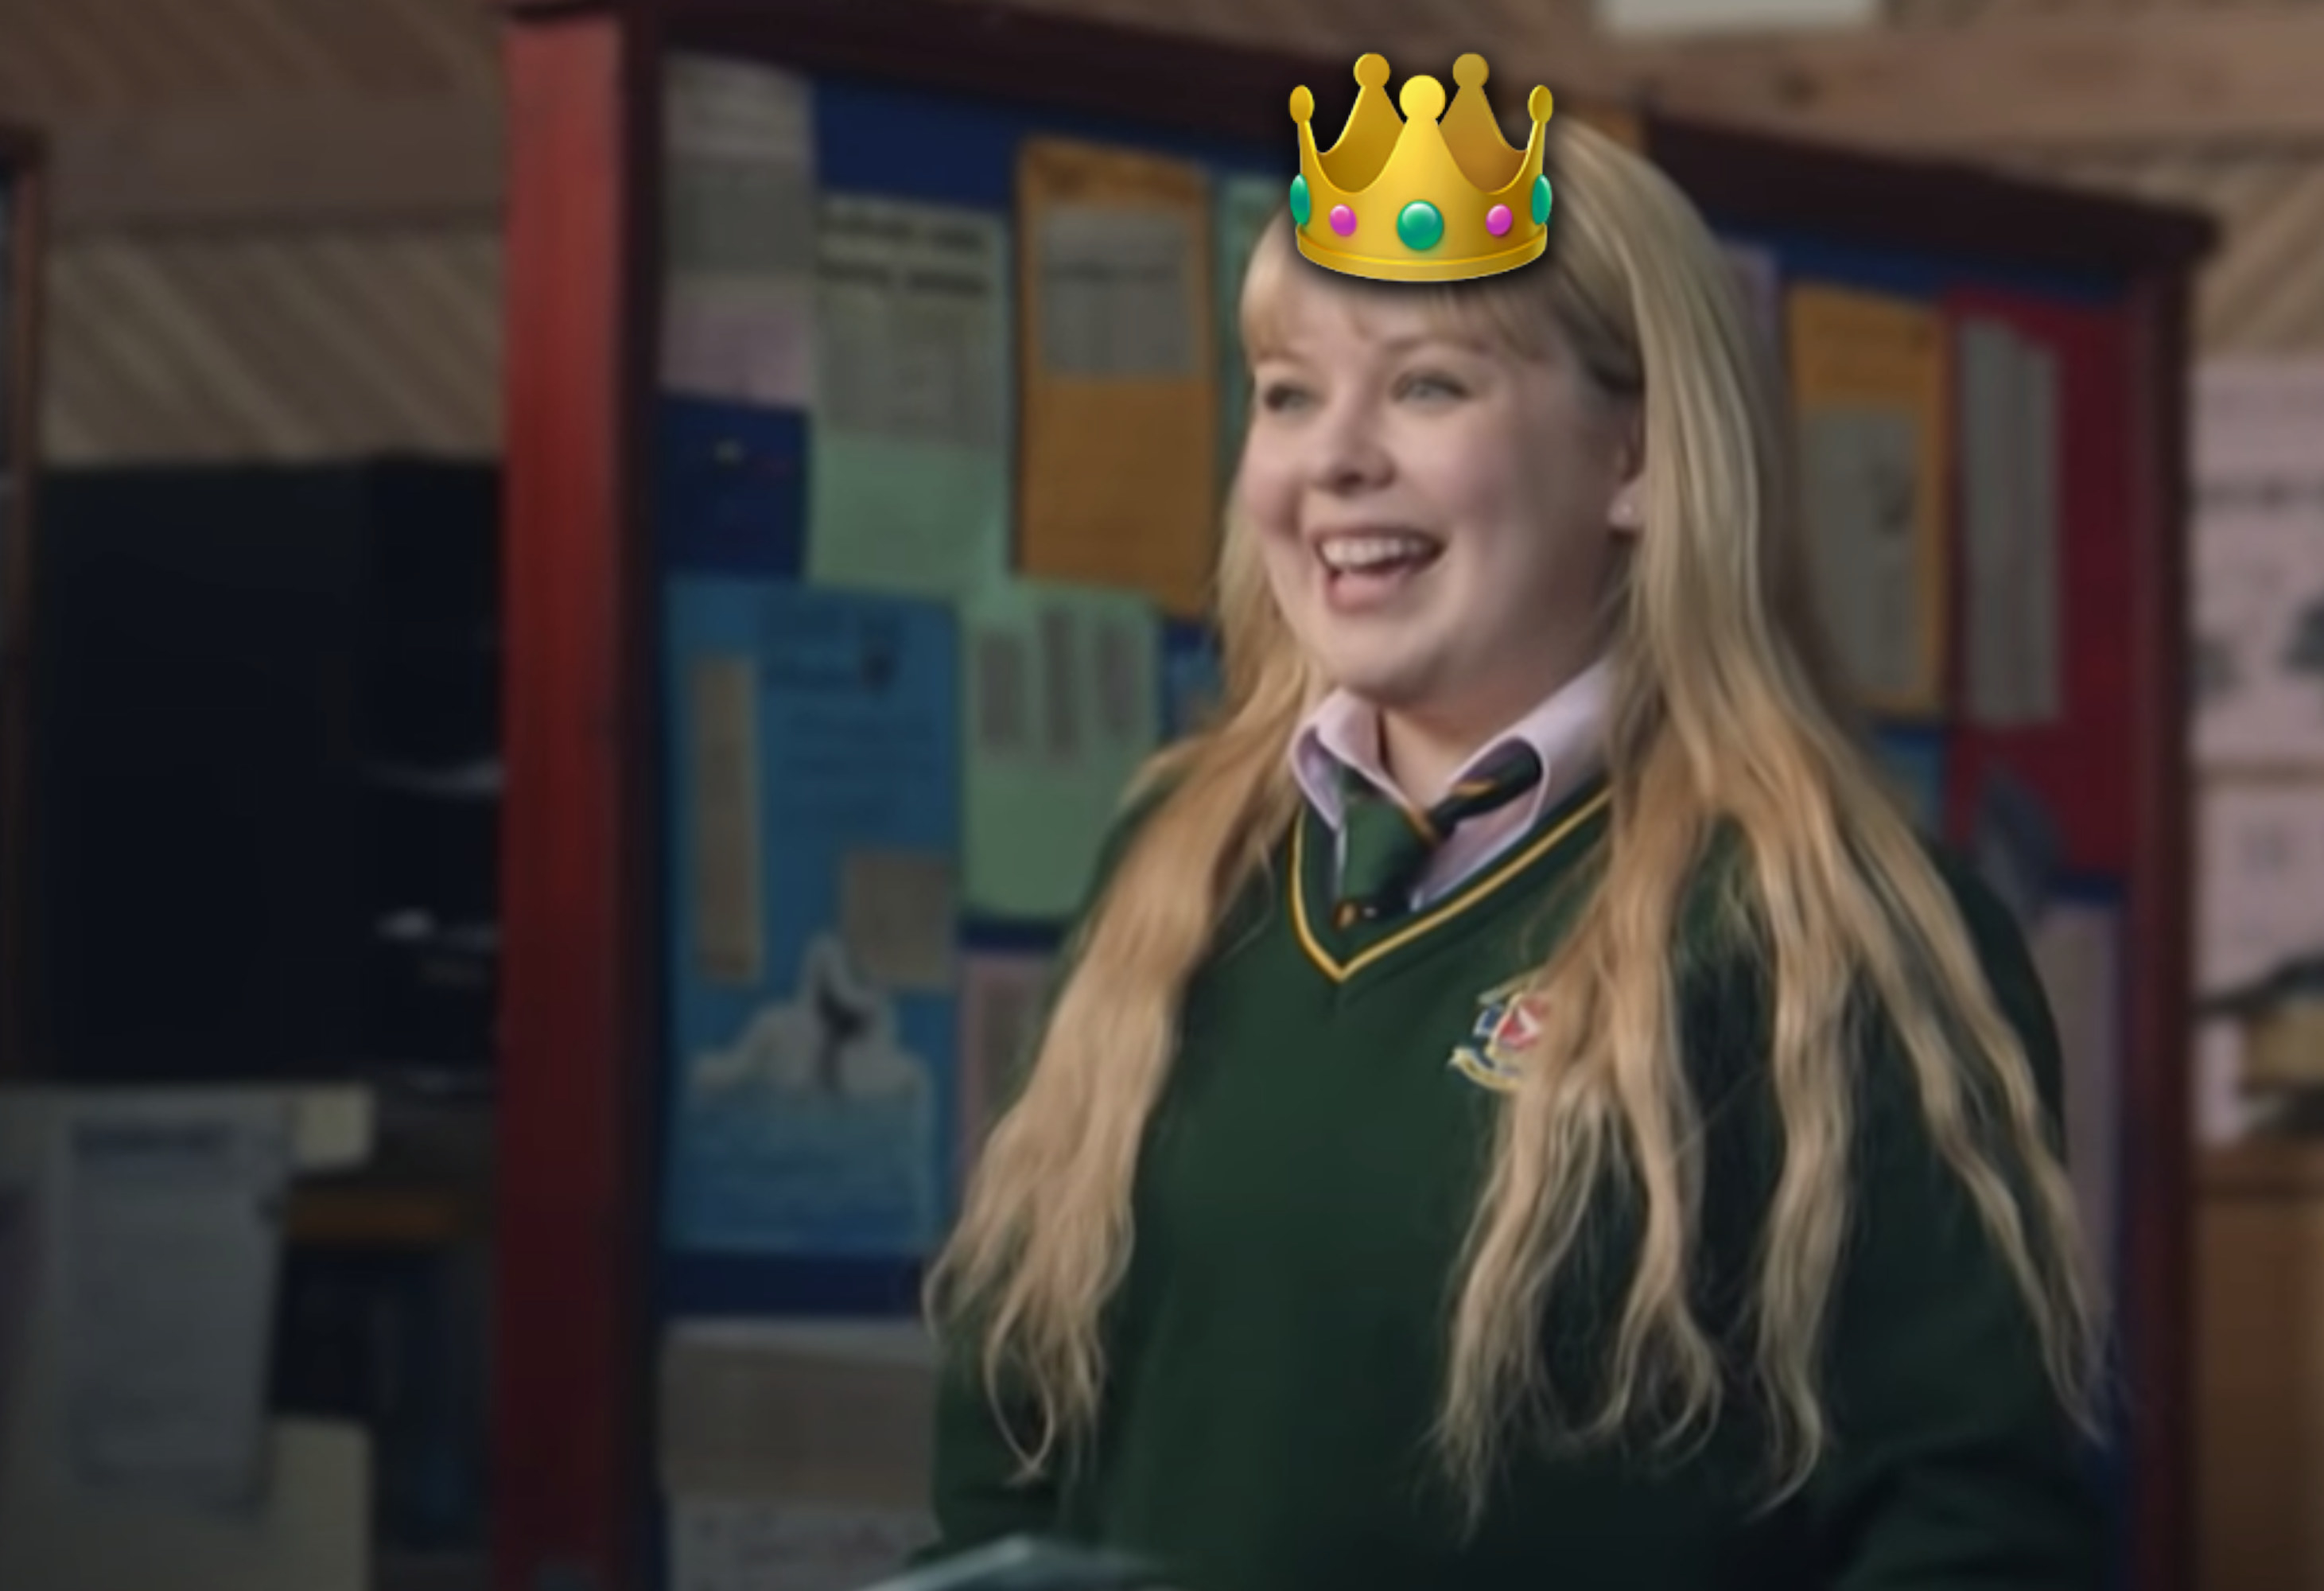 Clare in a crown